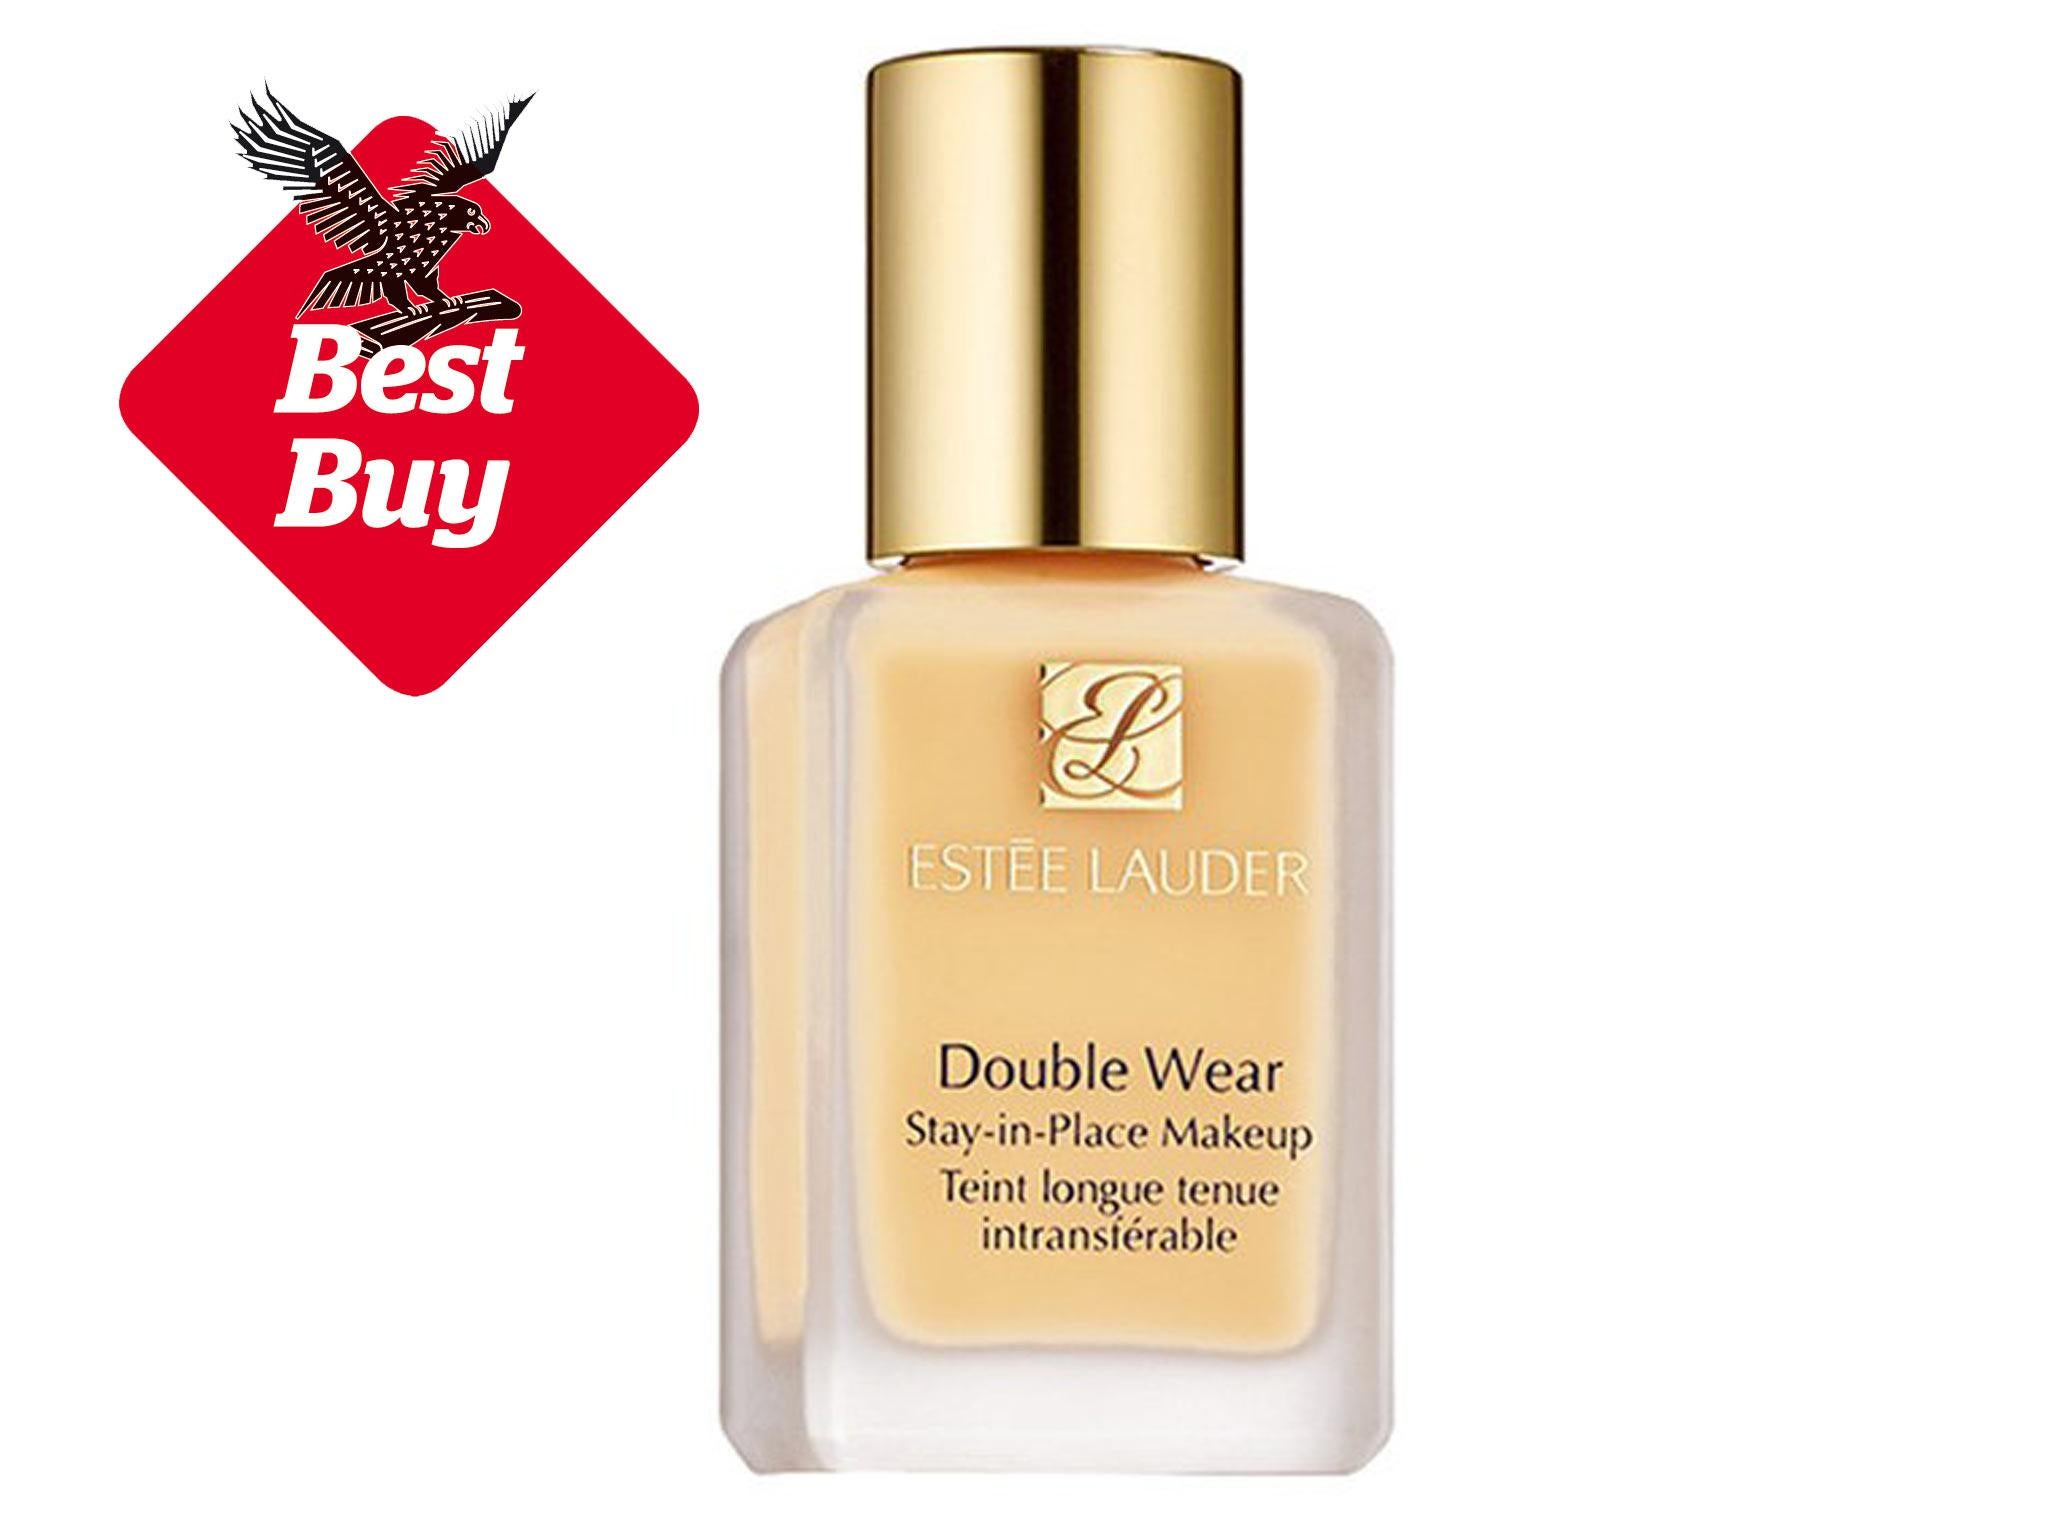 This foundation from skincare expert Estée Lauder lived up to its 15-hour promise, lasting all day in an air-conditioned office, without us needing to ...